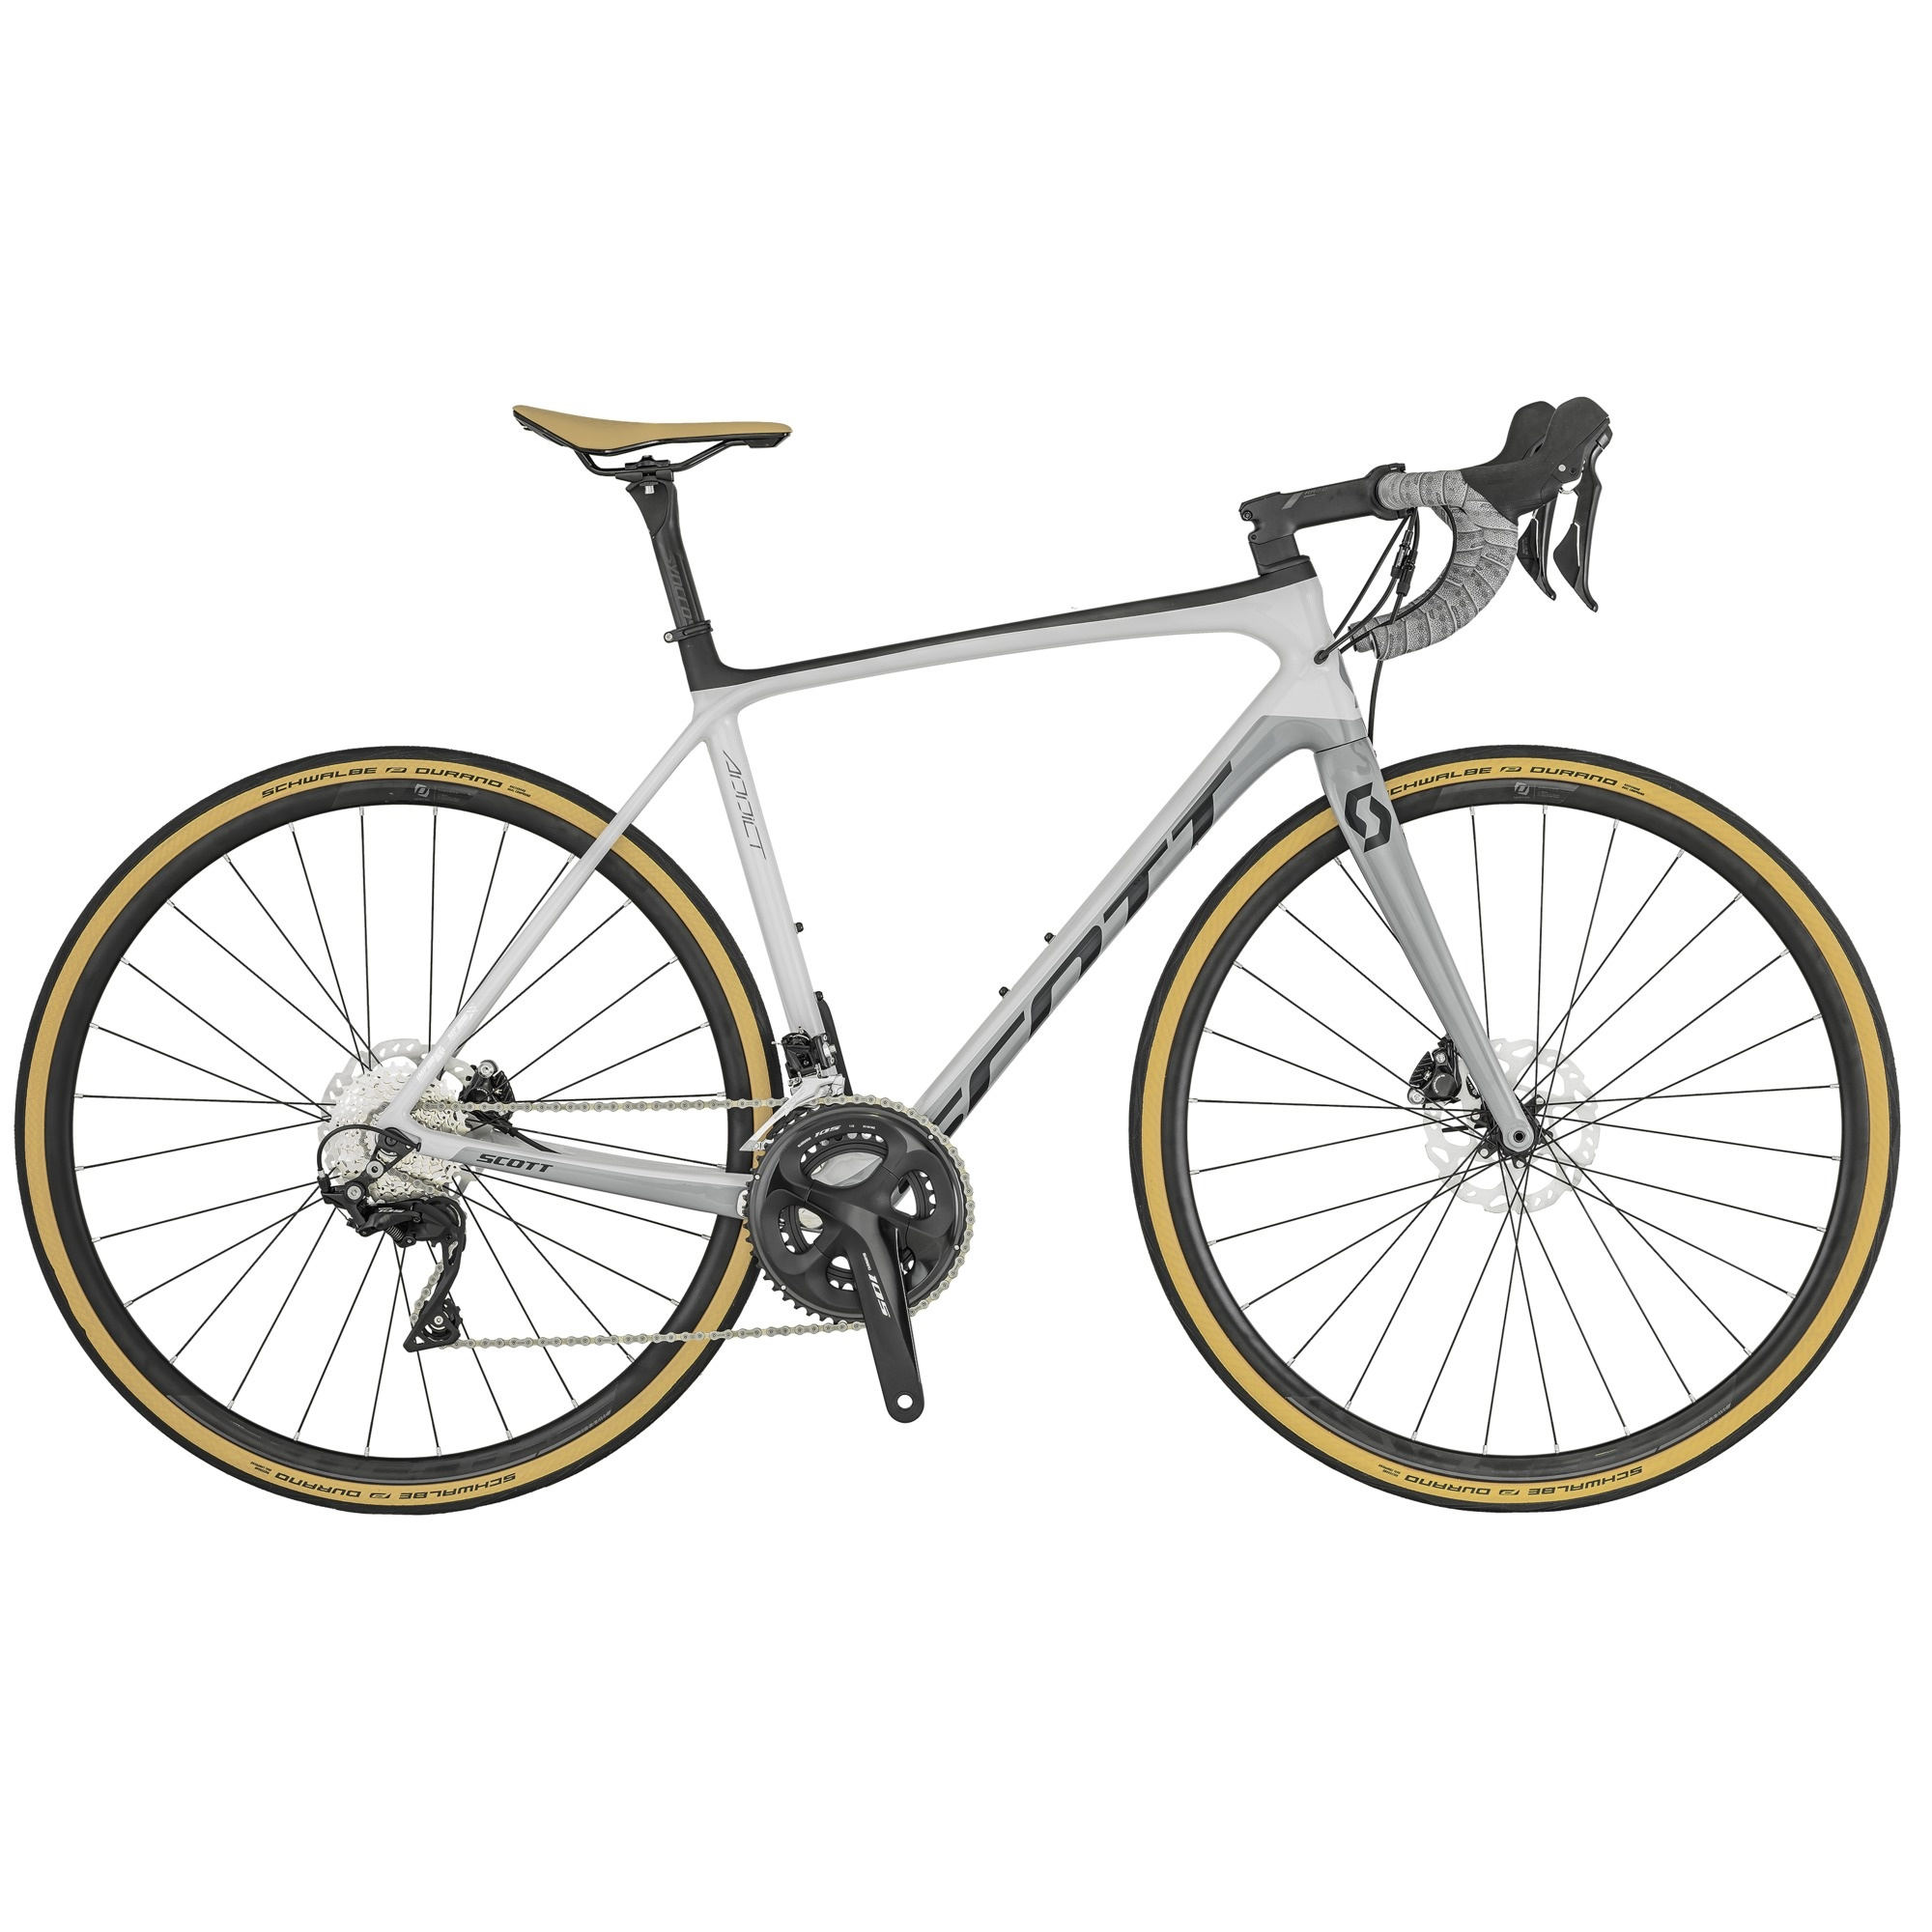 Addict 20 Disc Road Bike